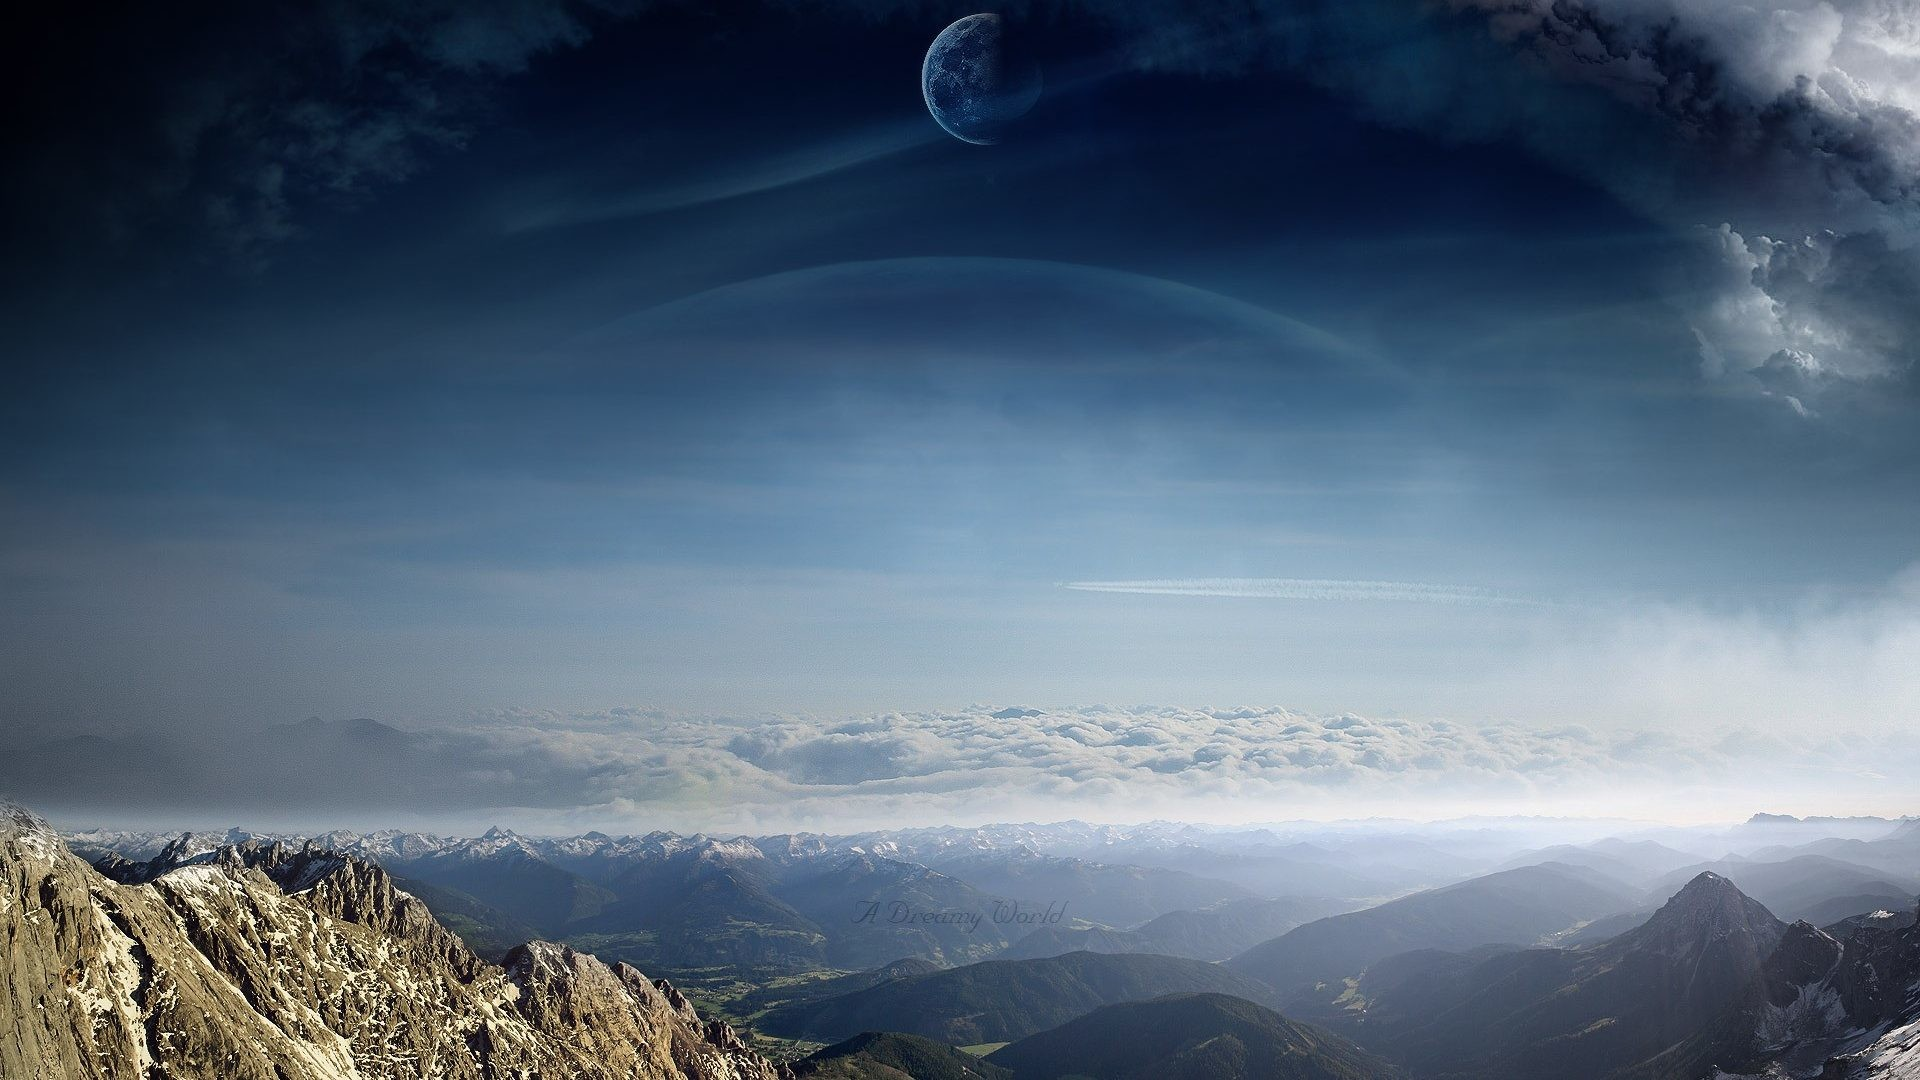 1920x1080 Alien Scenic Clouds Landscapes Moons Dreamy Planets Sci Manipulations  Digital Mountains Skies Art Hd Nature Wallpaper